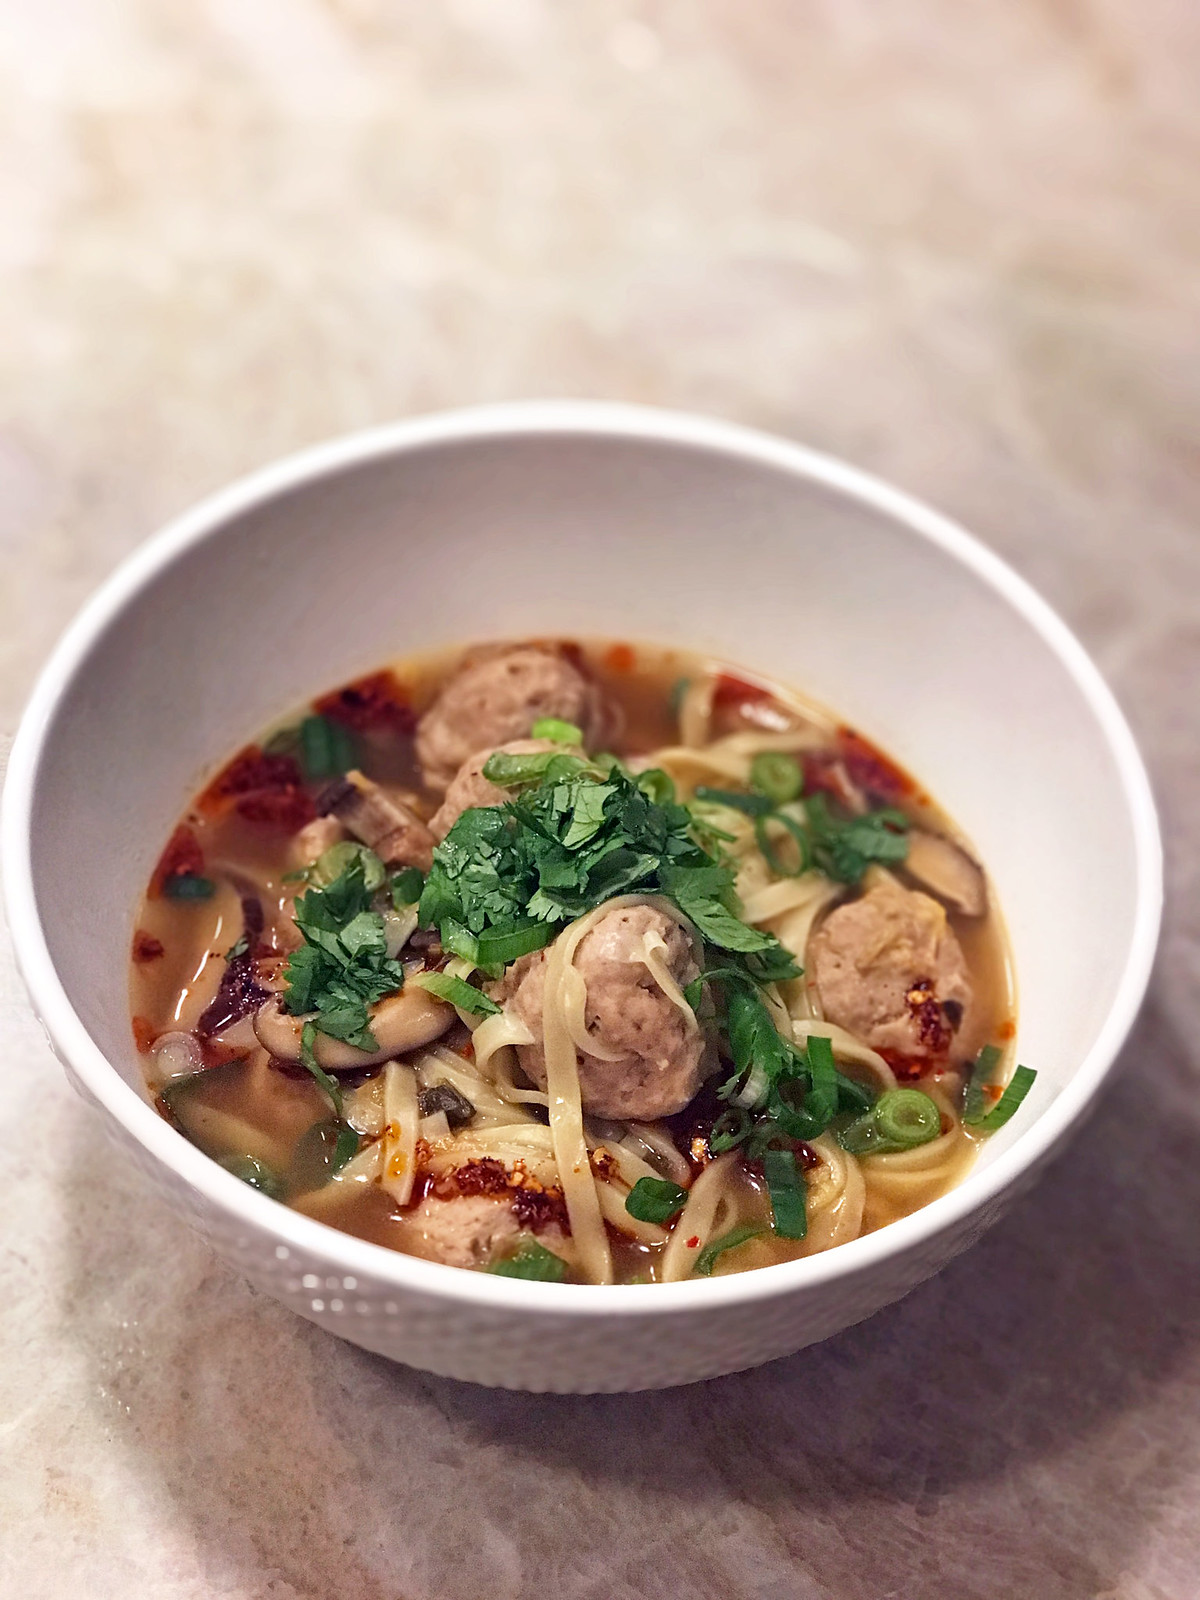 Turkey meatball and noodle soup